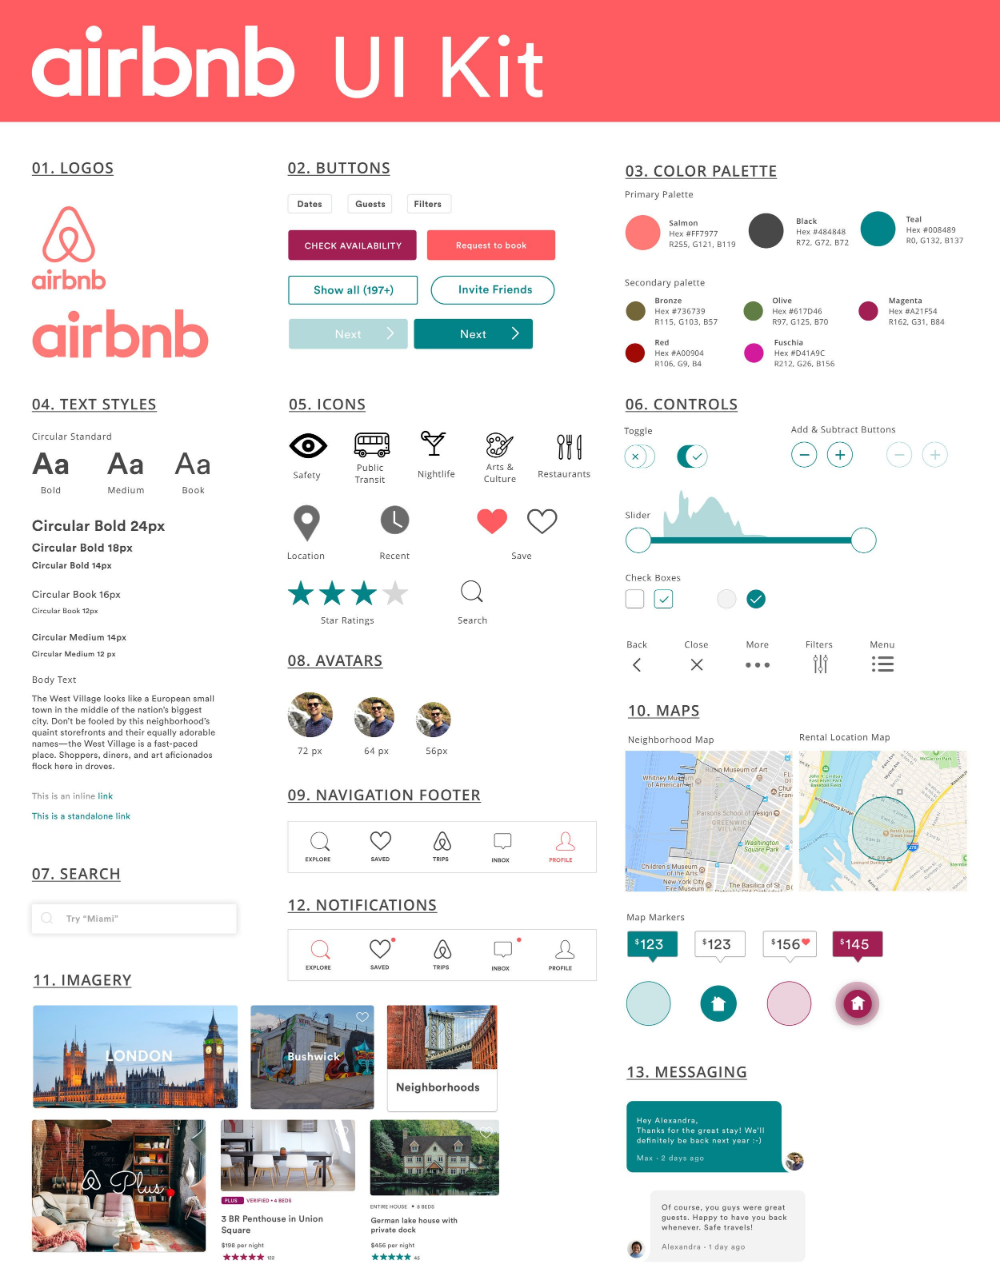 Airbnb Style Guide Google Search In 2020 Airbnb Design Web Design Airbnb App